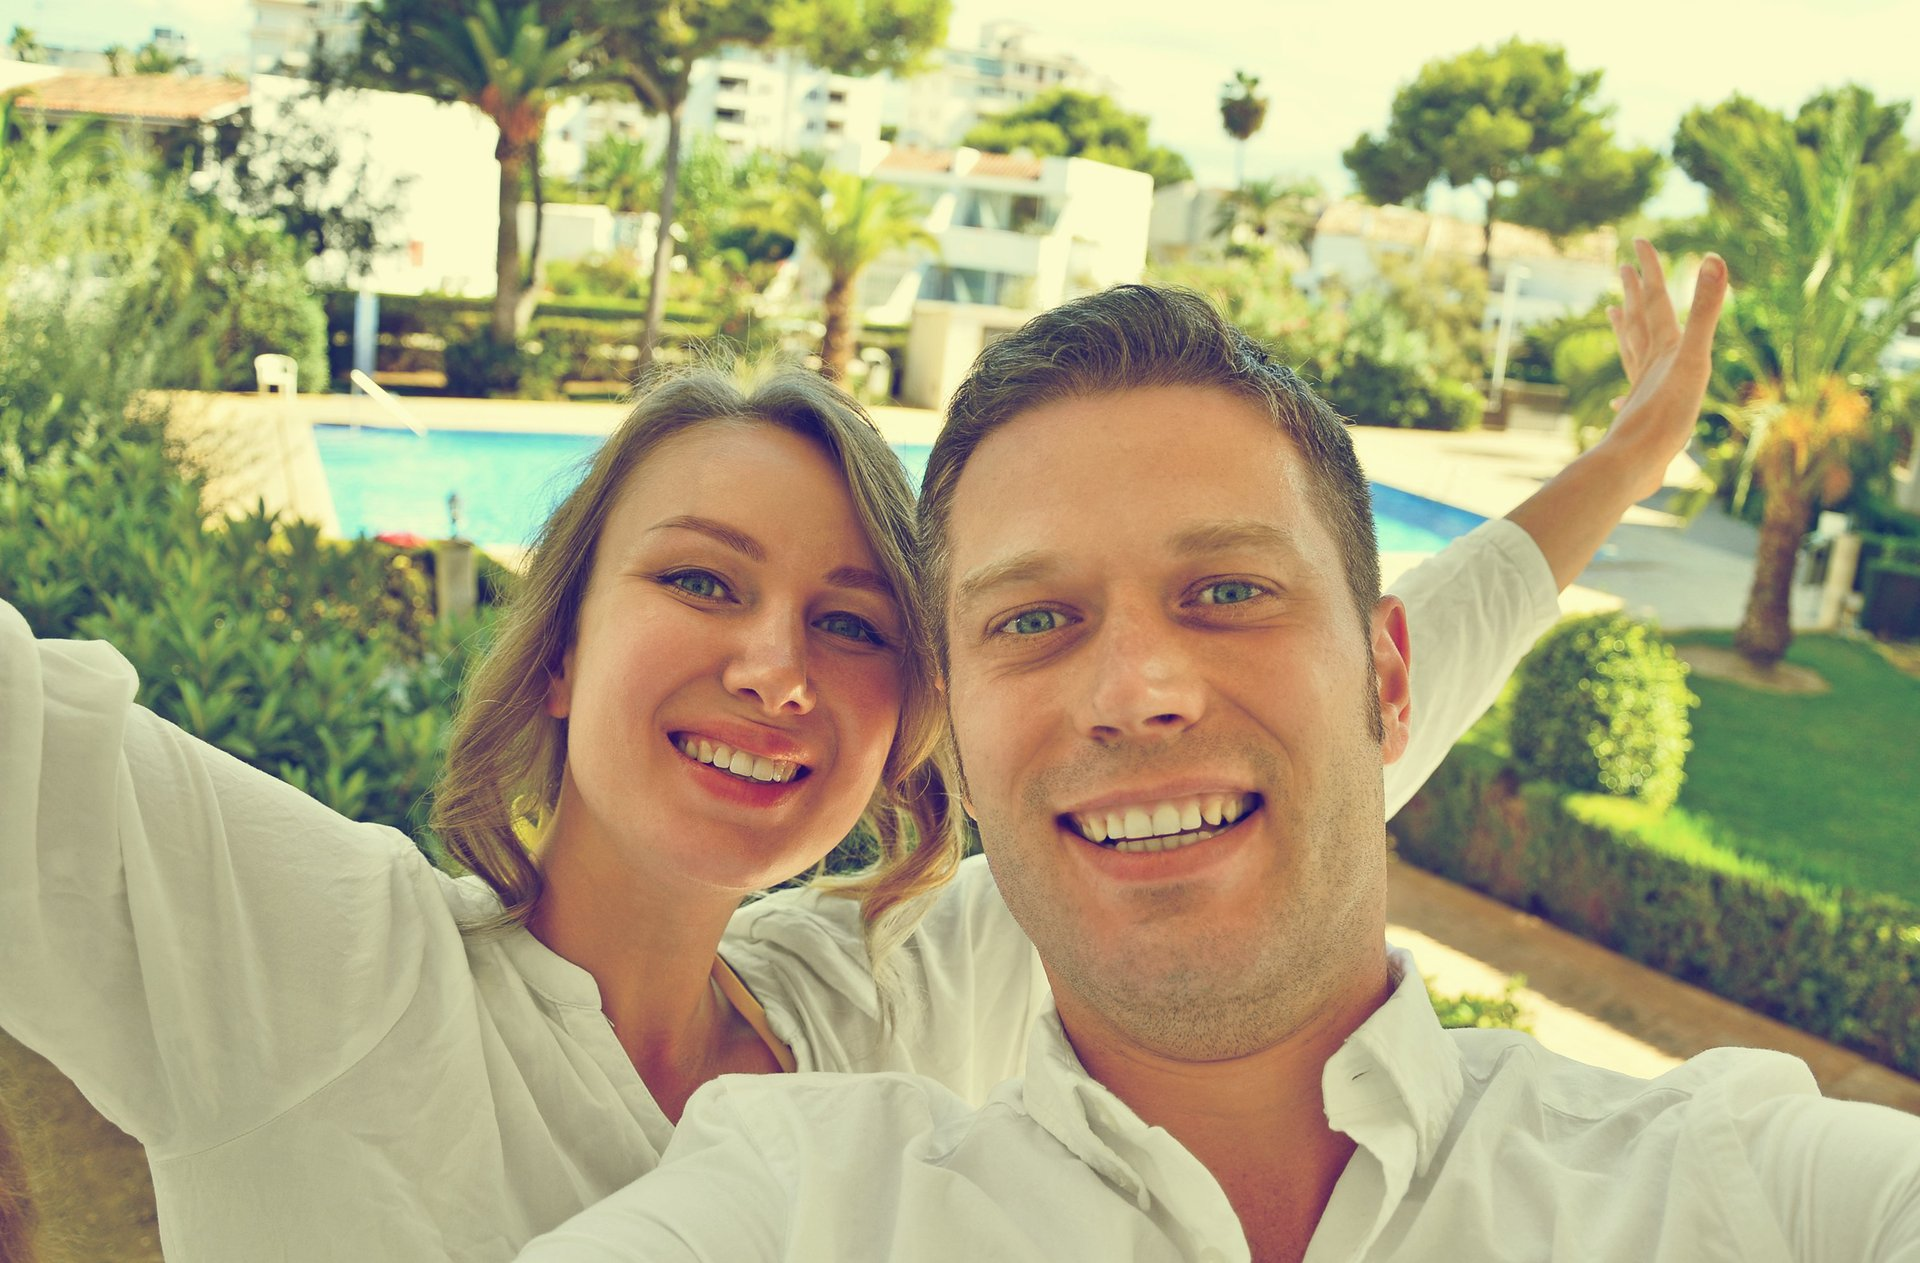 A couple takes a selfie from their hotel room balcony